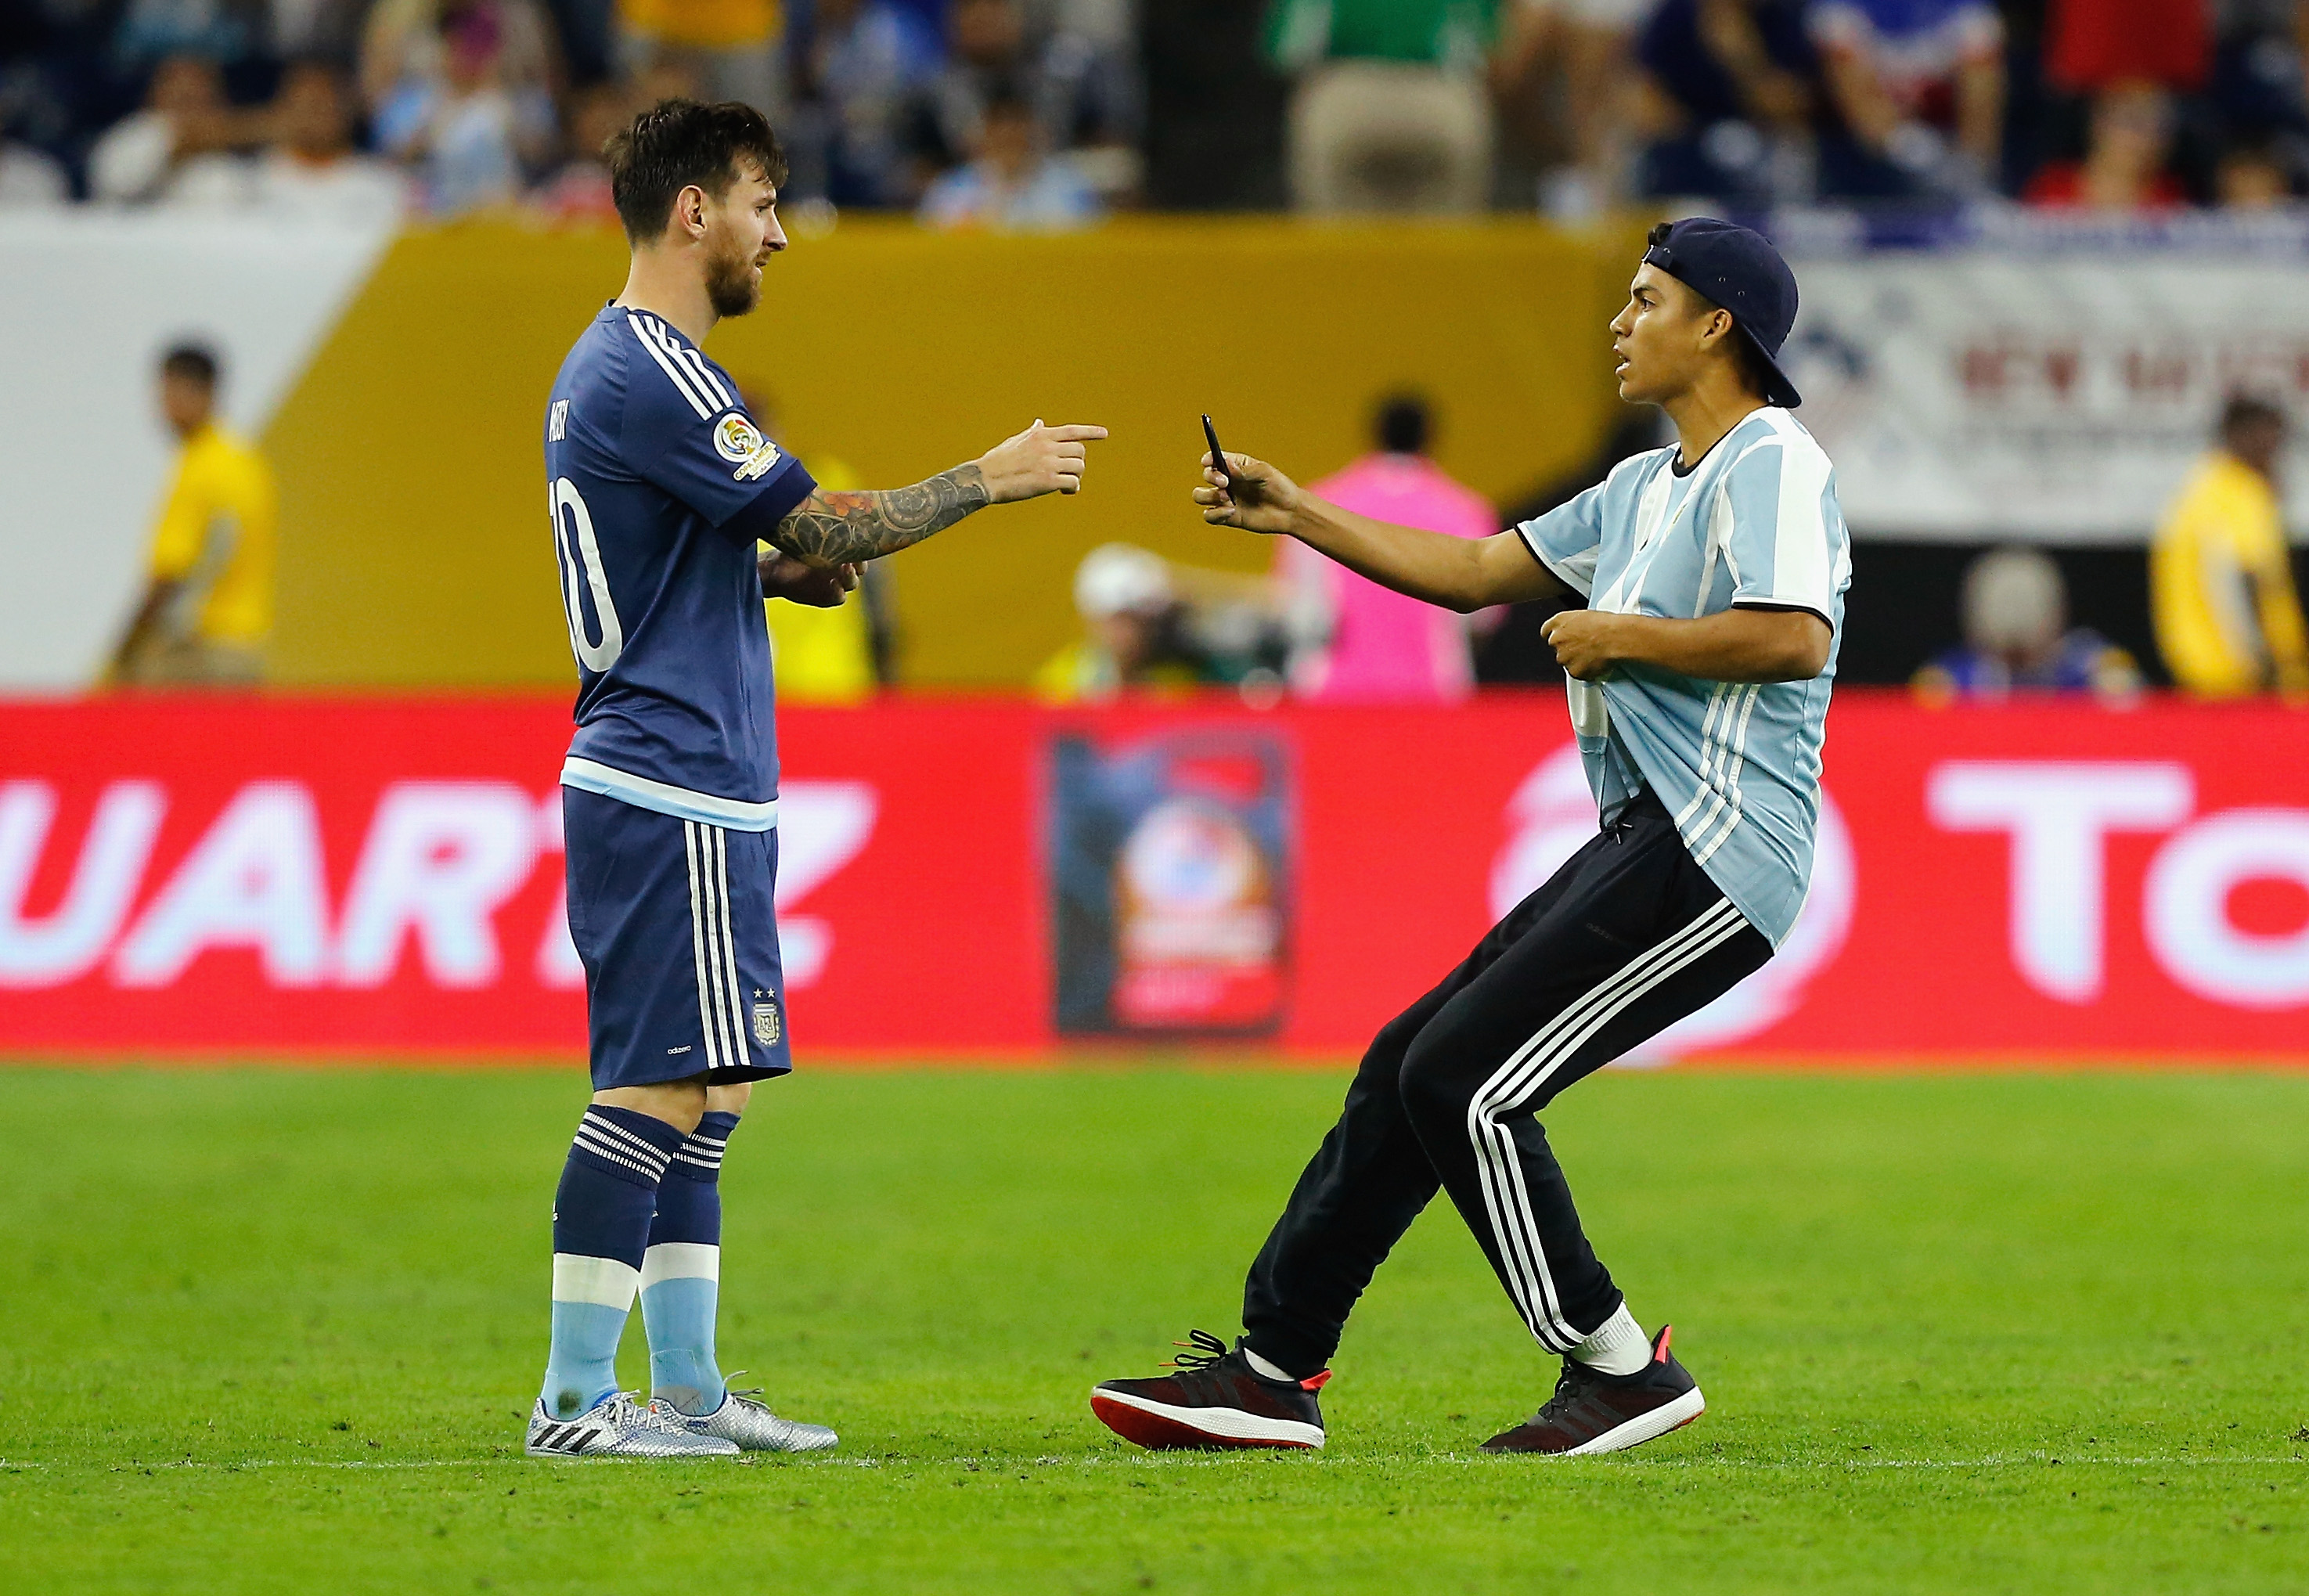 HOUSTON, TX - JUNE 21: Lionel Messi #10 of Argentina interacts with a fan who ran onto the field prior to the start of the second half during a 2016 Copa America Centenario Semifinal match between Argentina and the United States at NRG Stadium on June 21, 2016 in Houston, Texas. Bob Levey/Getty Images/AFP